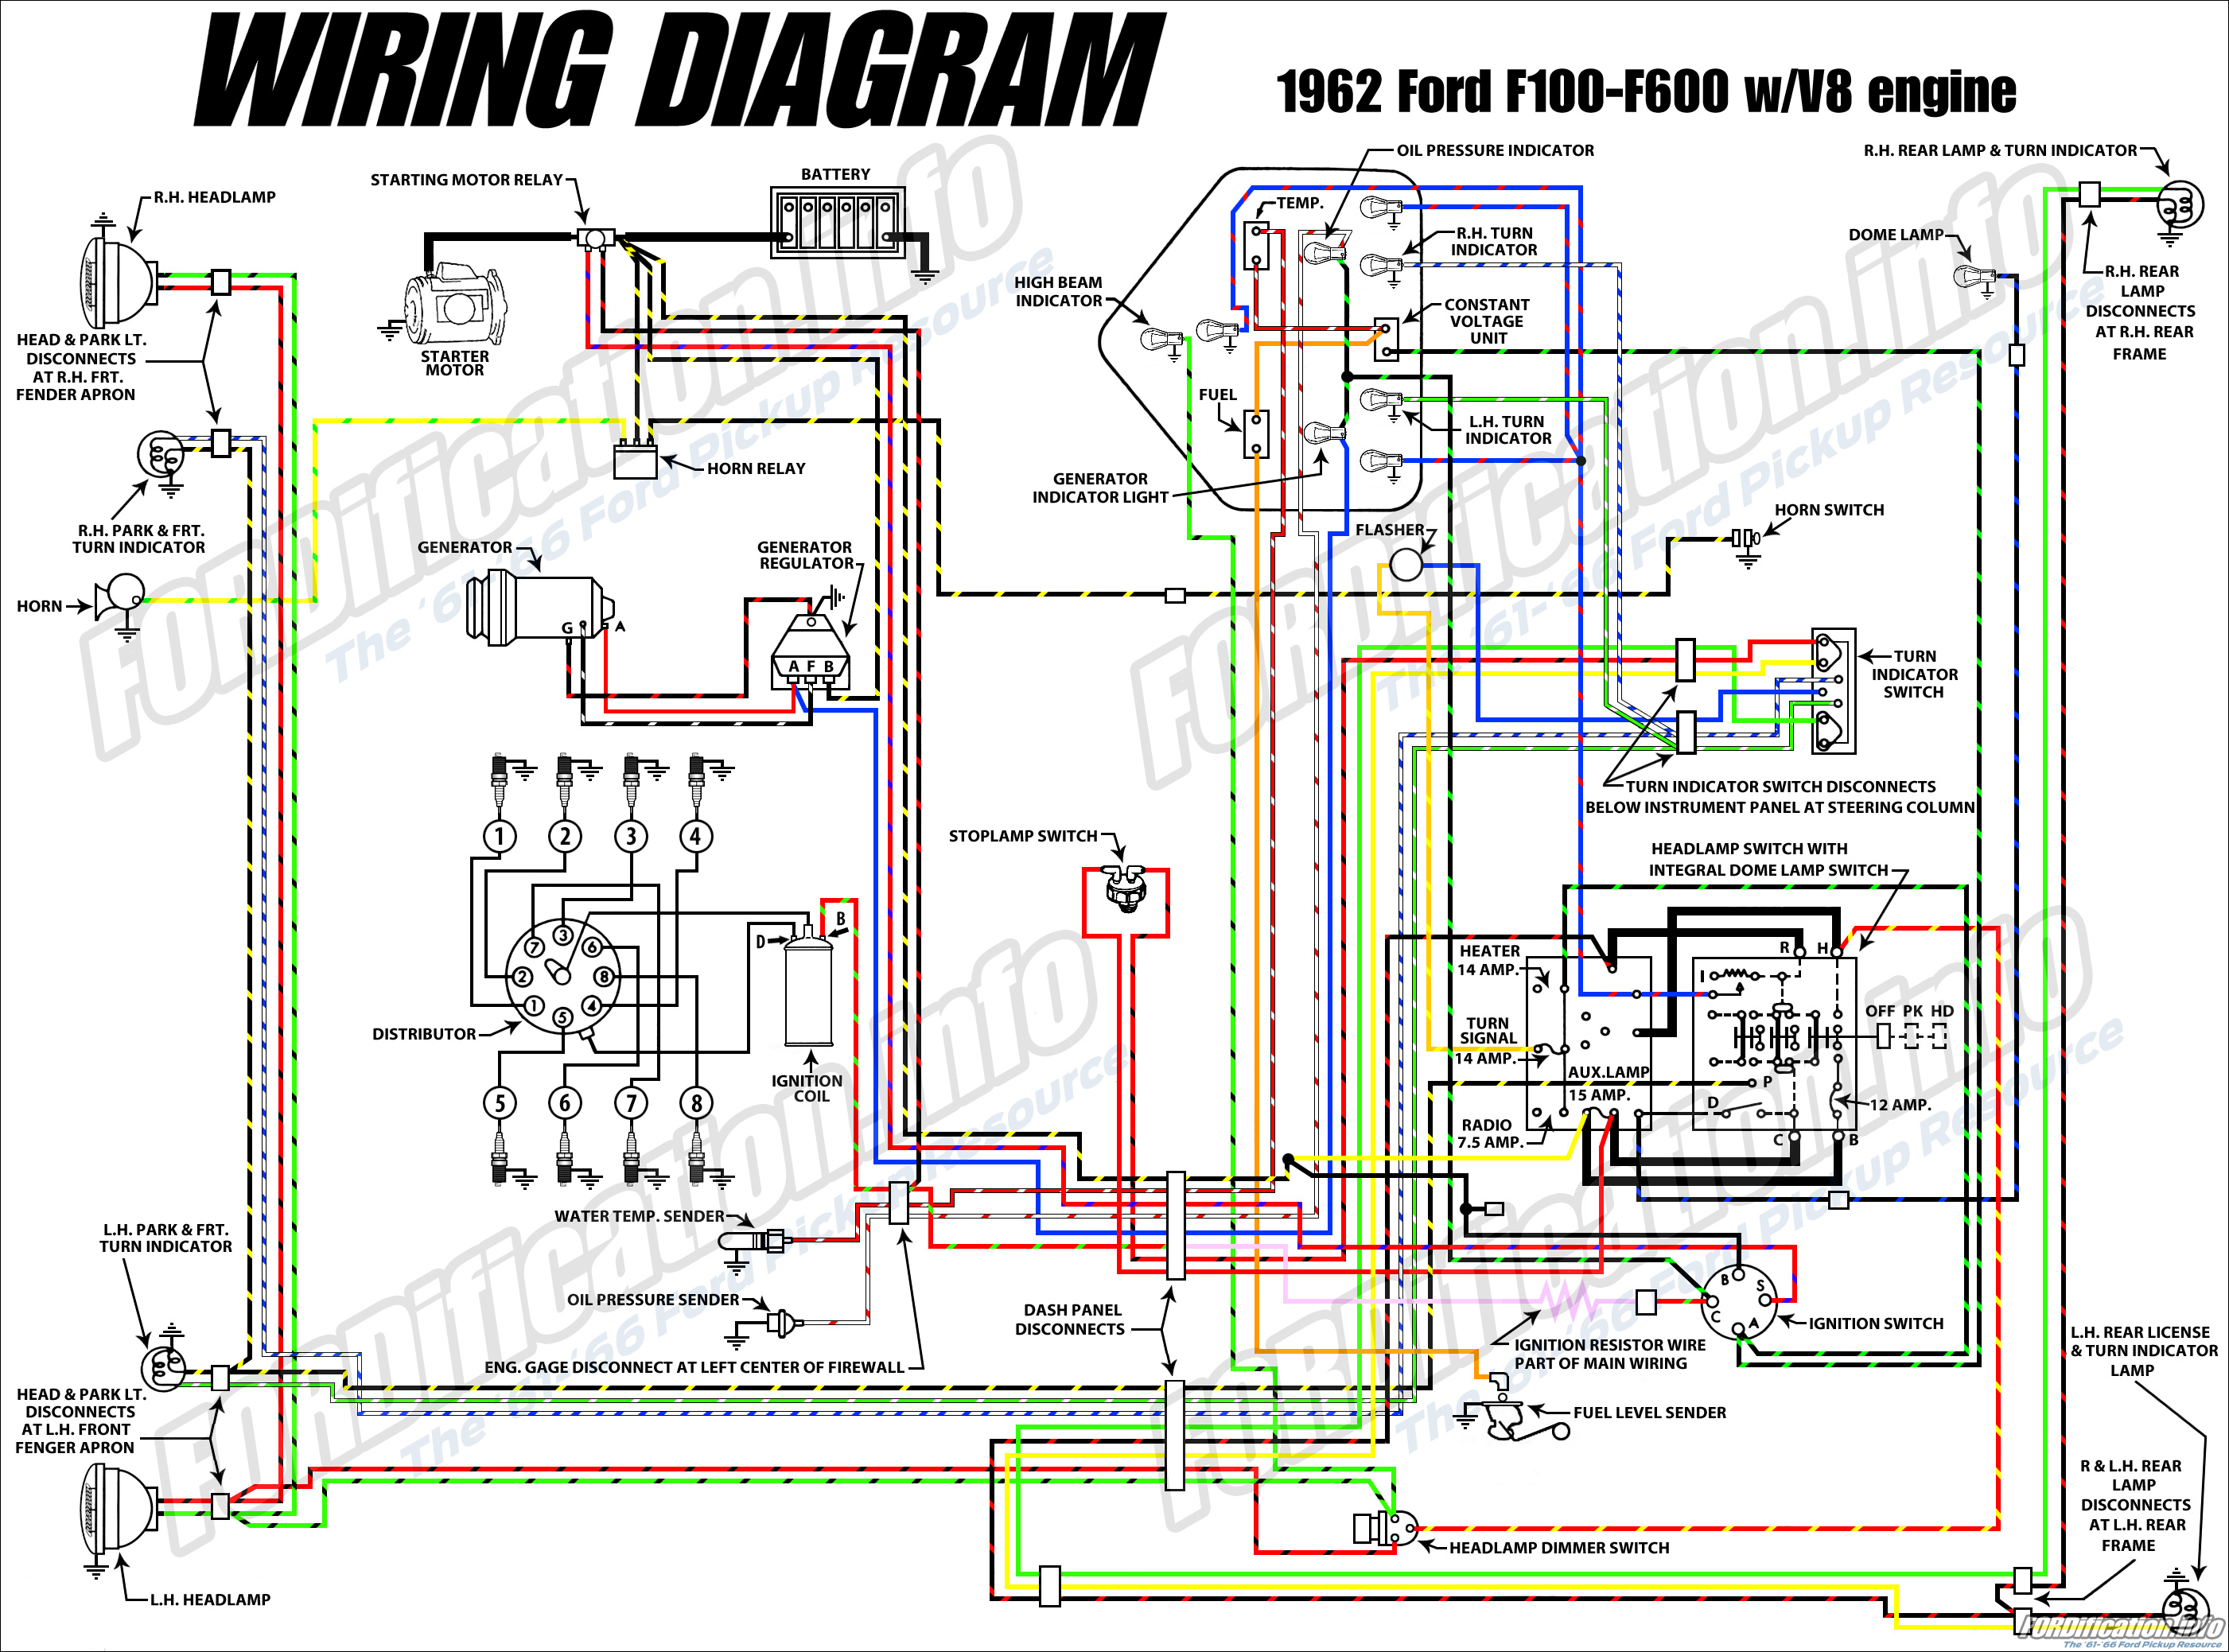 Ford F600 Truck Wiring Diagrams Starting Know About Diagram 1967 Schematic Rh Aikidorodez Com